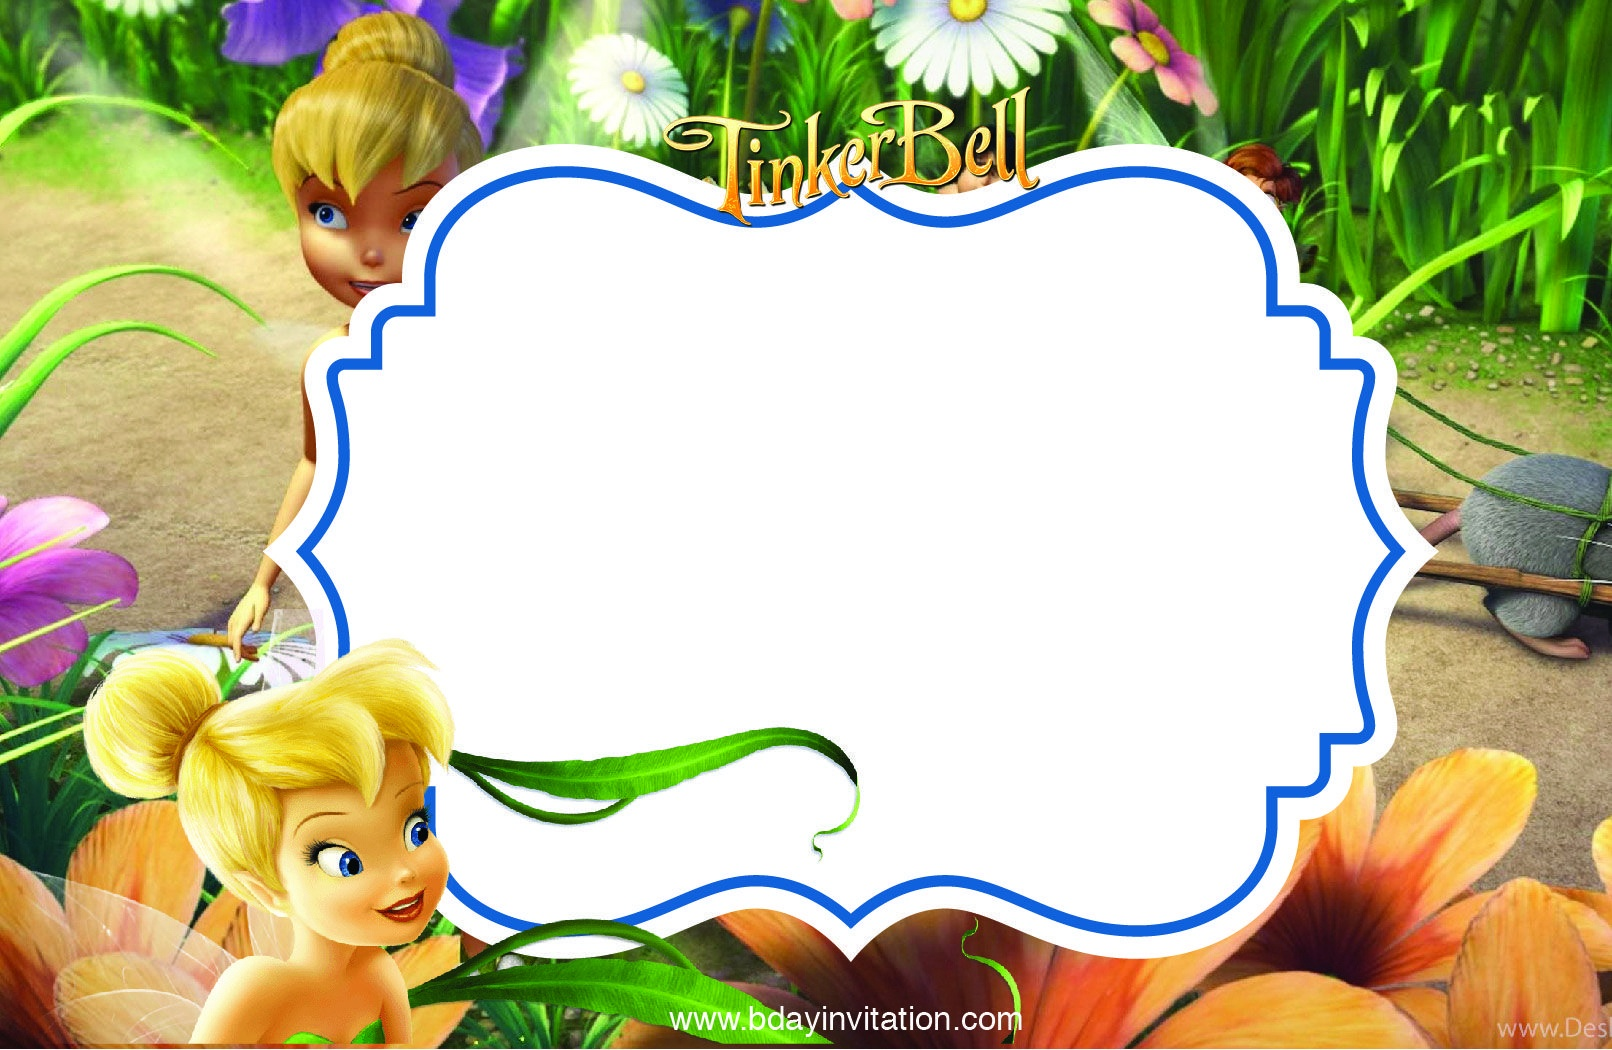 Cool Free Printable Disney Tinkerbell Birthday Invitation Template - Free Tinkerbell Printable Birthday Invitations